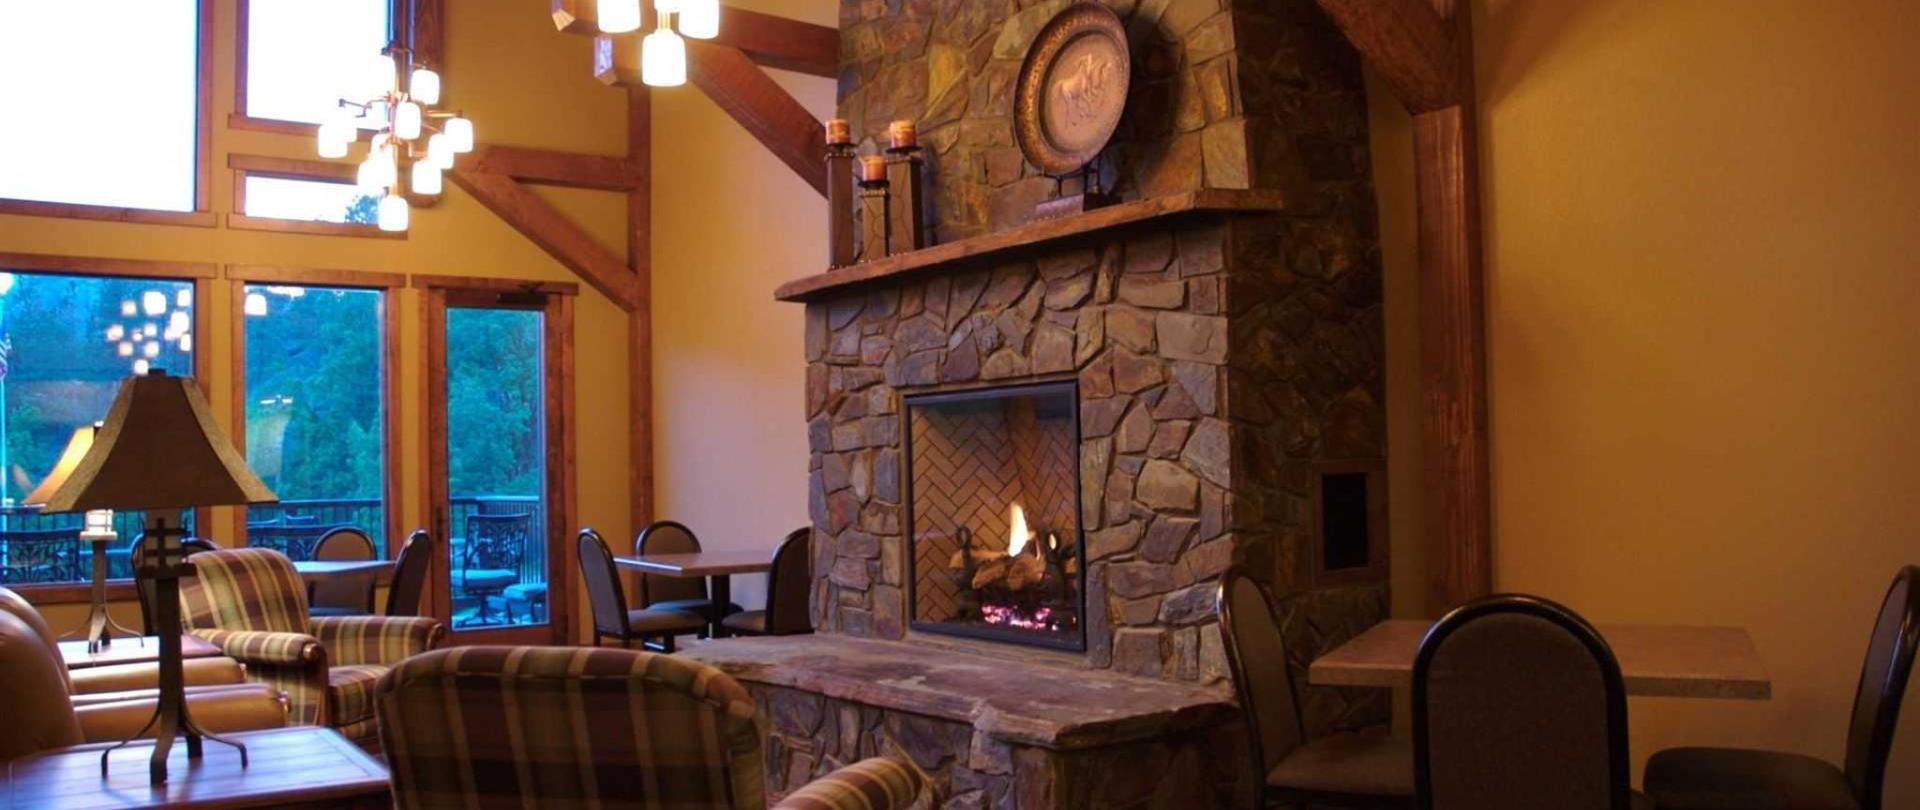 k-bar-s-lodge-lobby-and-fireplace.jpg.1920x0.jpg